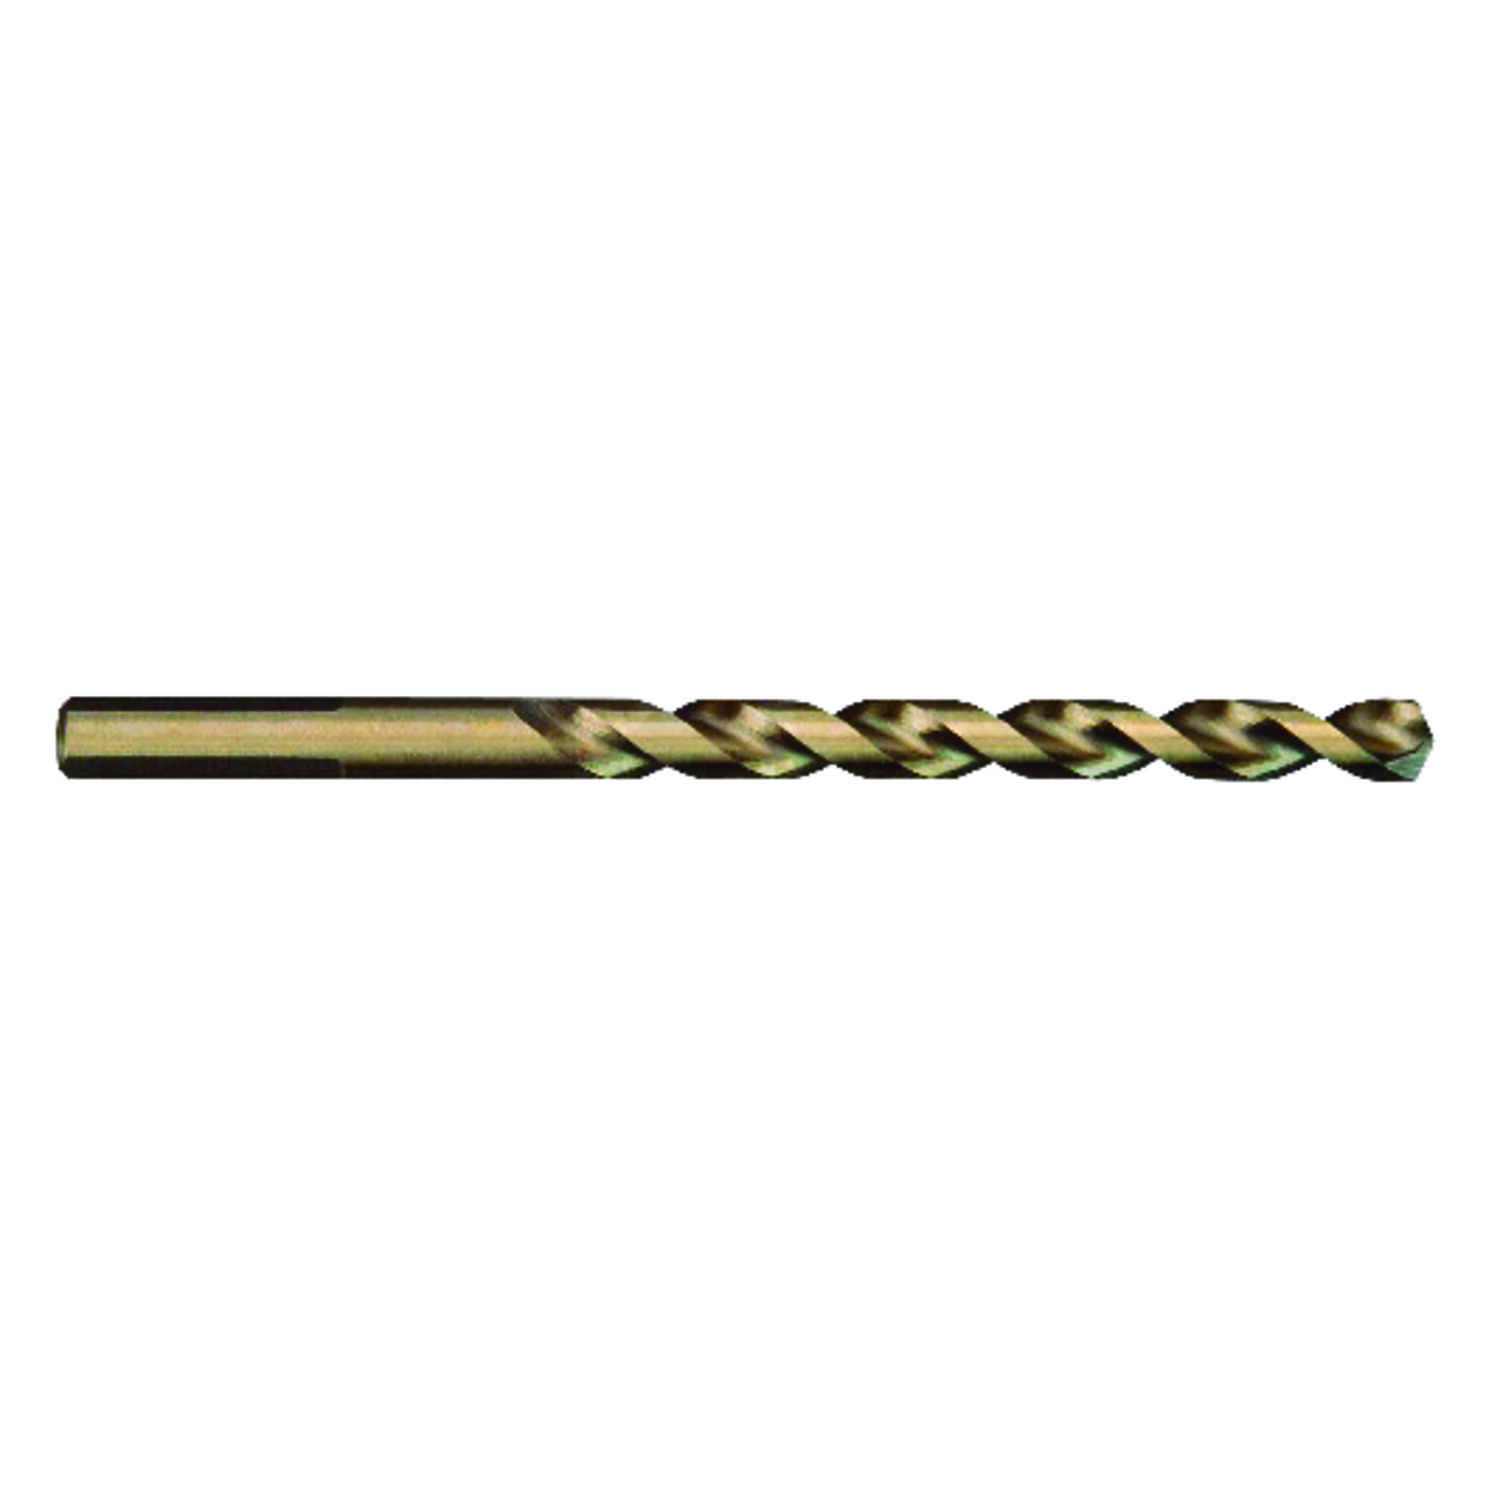 Milwaukee  RED HELIX  3/16 in. Dia. x 3-1/2 in. L Drill Bit  3-Flat Shank  Cobalt Steel  1 pc. THUND